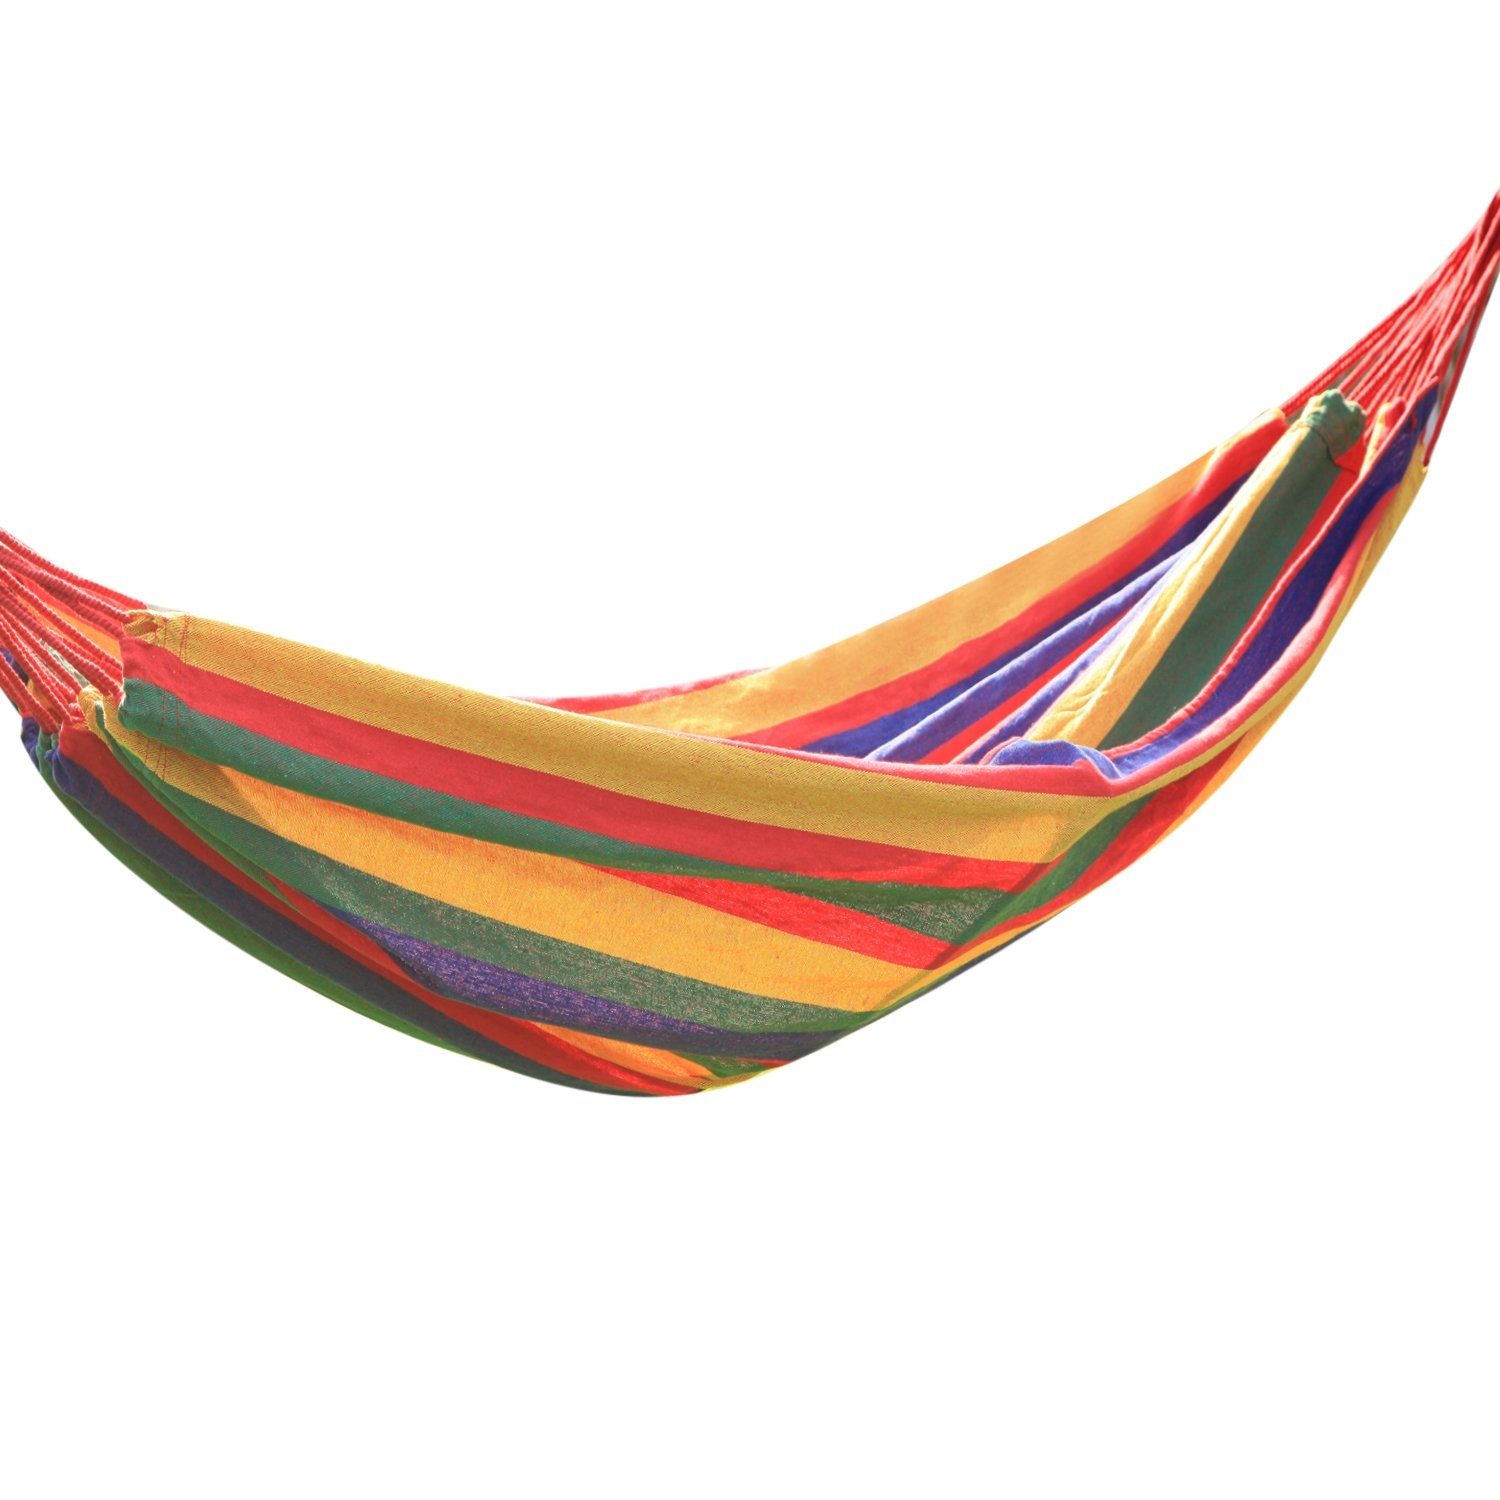 Adeco Naval-Style Cotton Fabric Canvas Hammock Tree Hanging Suspended Outdoor Indoor Bed Cayenne Color, 63 Wide